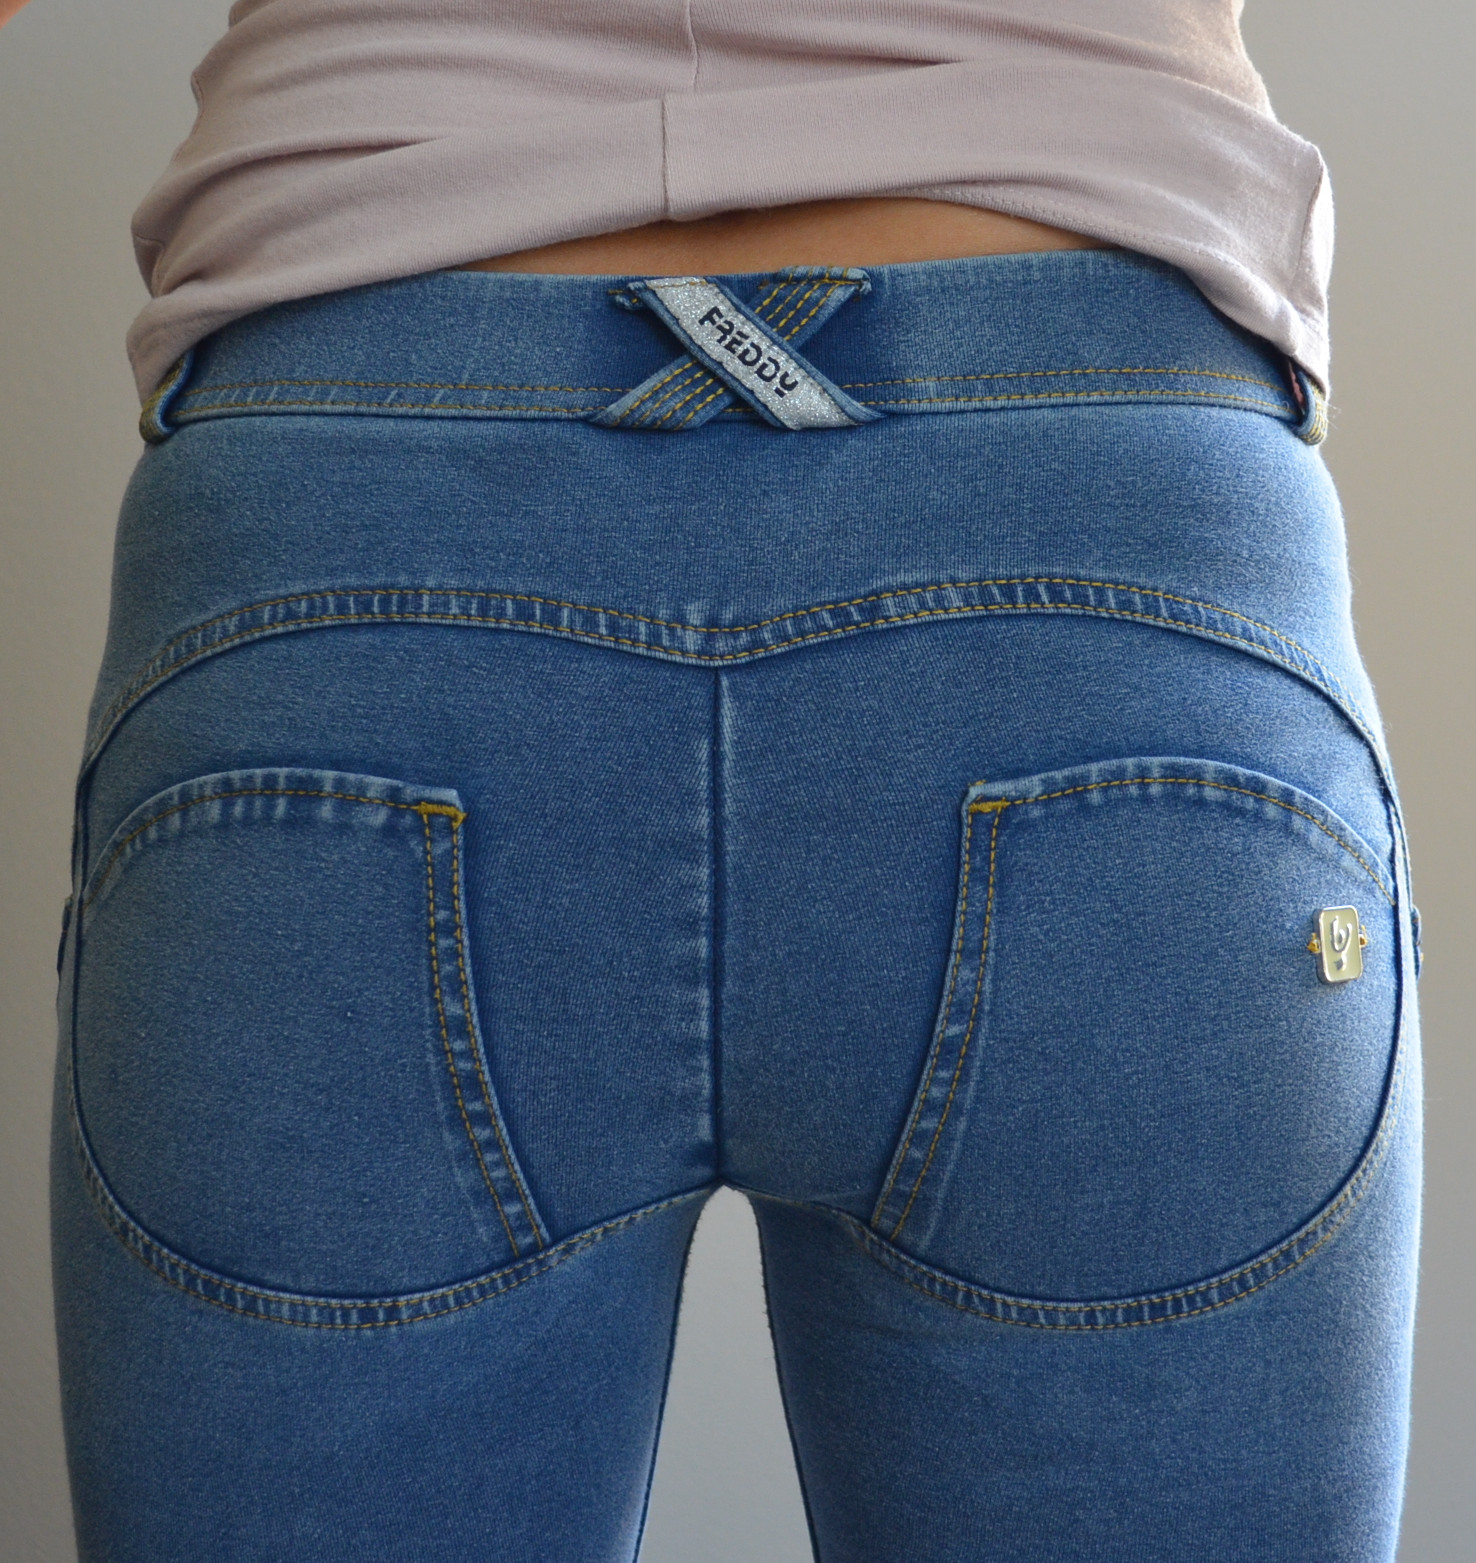 informazioni per a3b8f f24c4 The Best Butt Jeans- Review and Comparison | Lollipuff